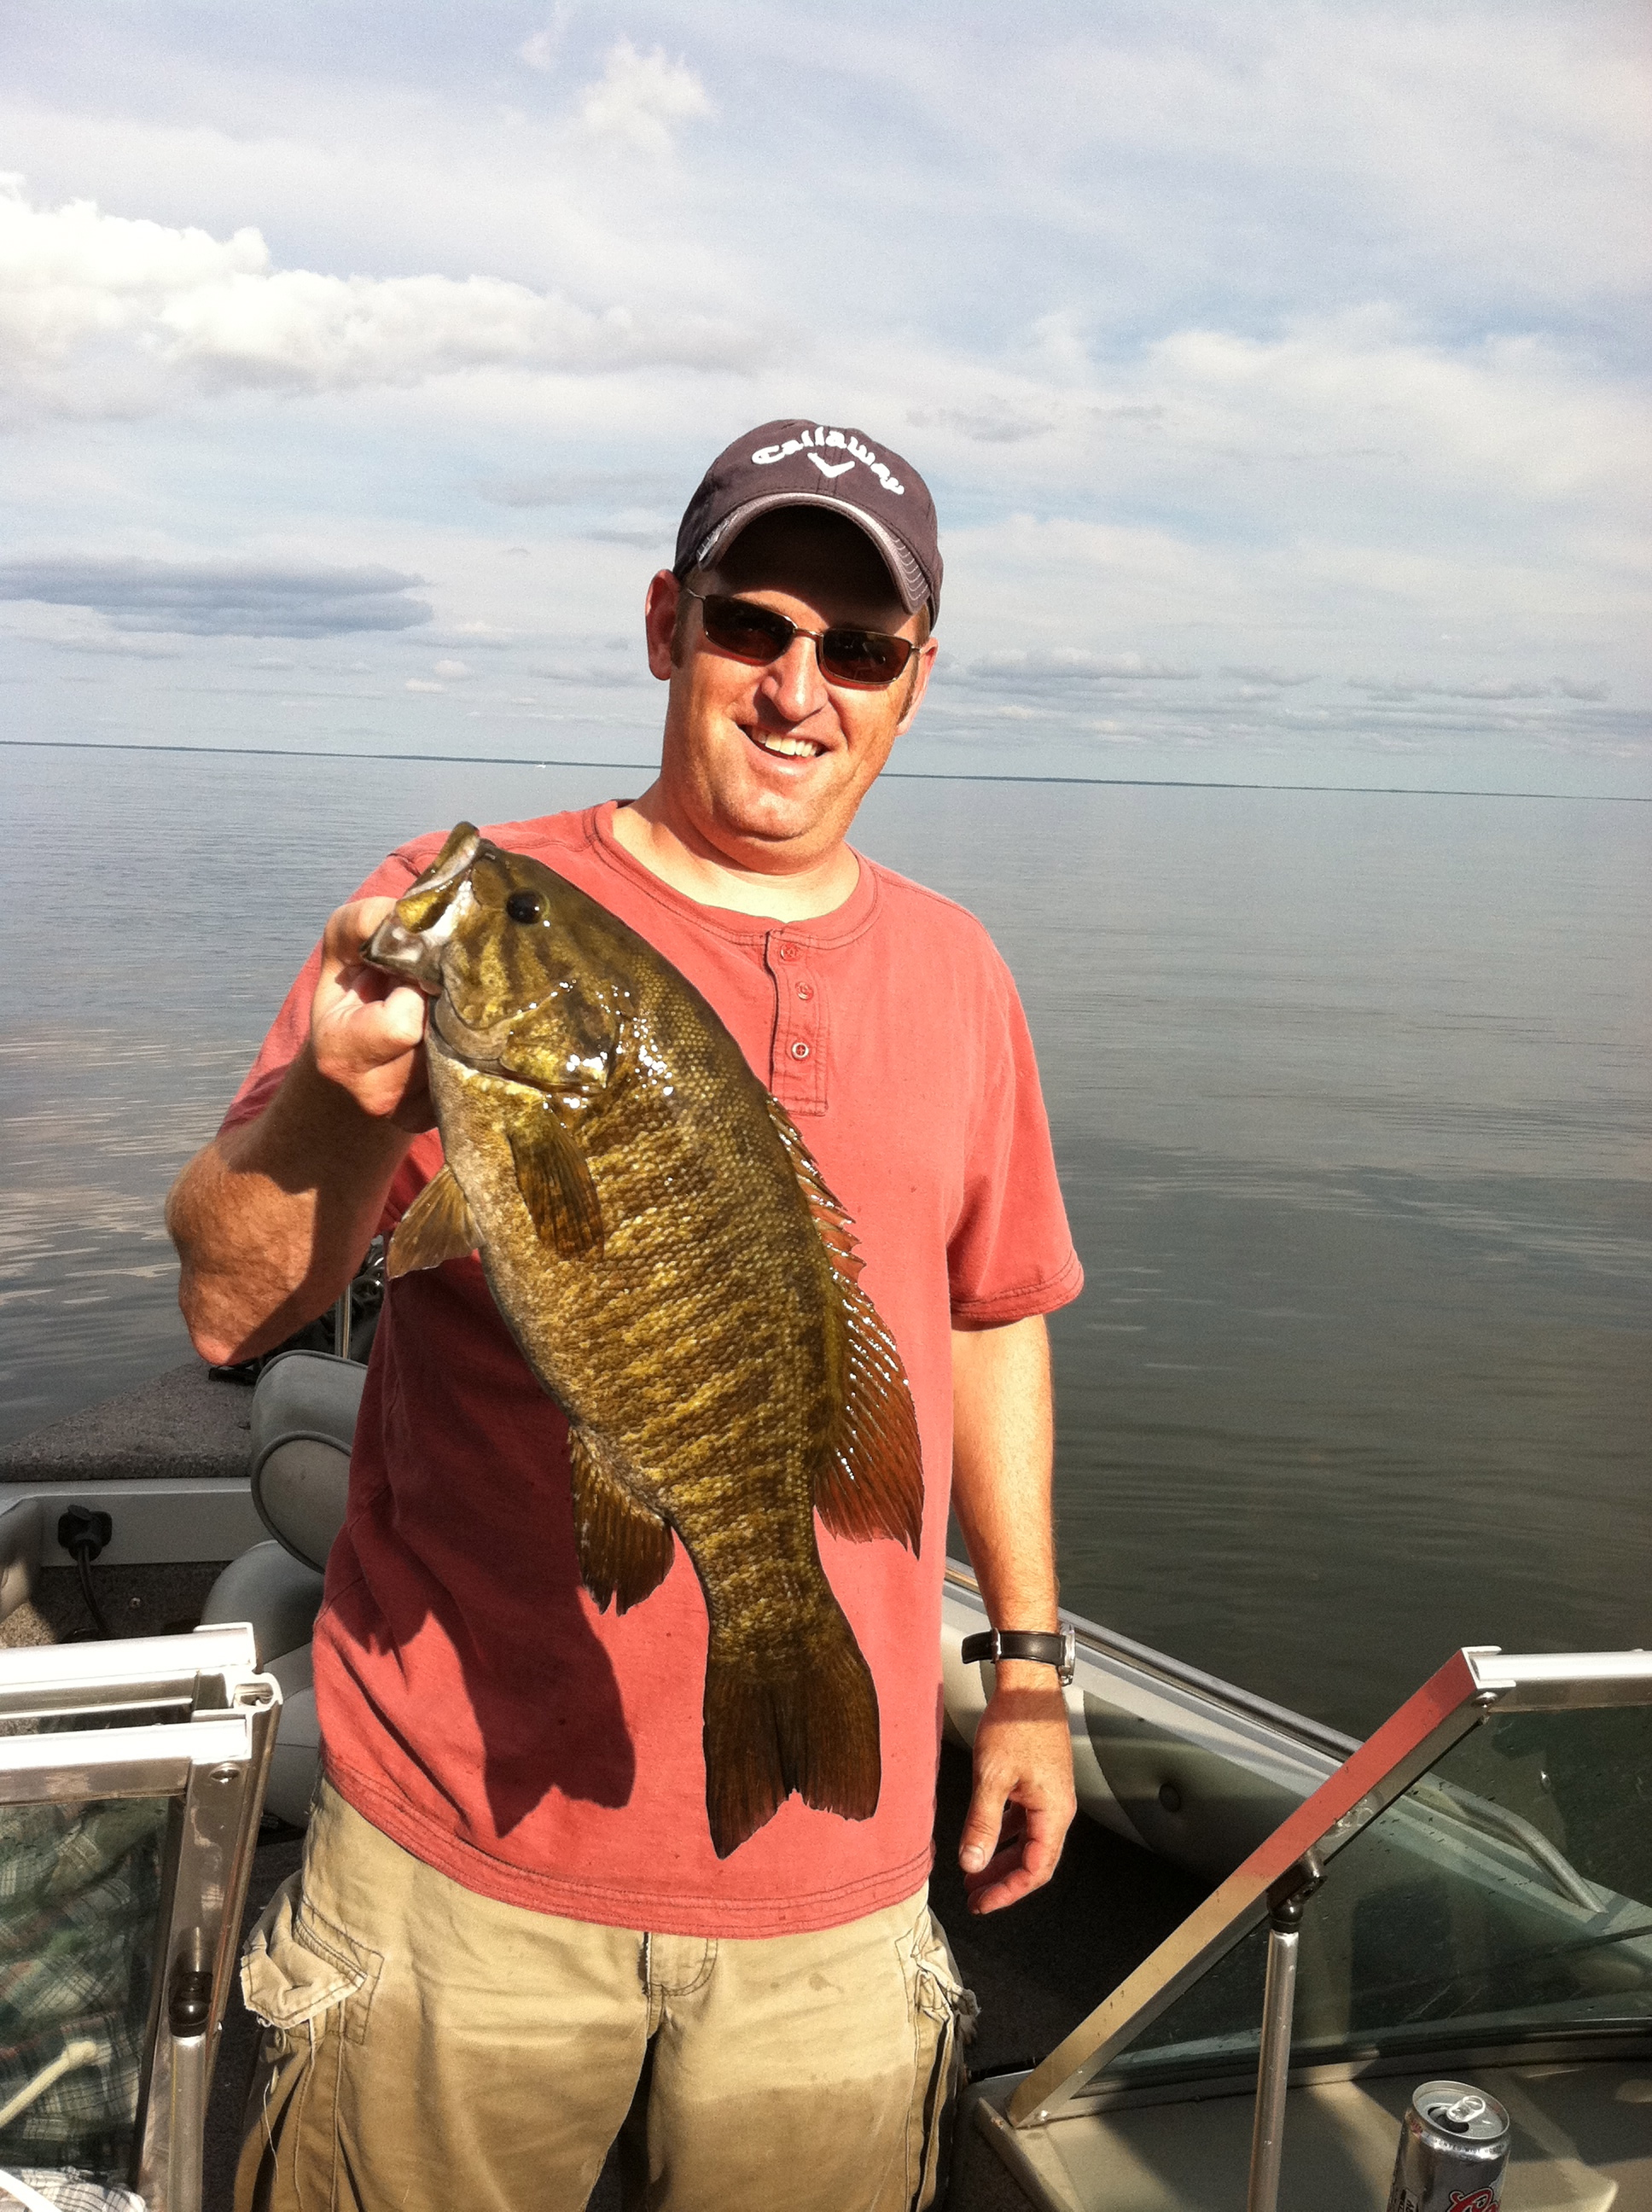 Fishing this years best smallie so far, 18.5 inch Mille Lacs 2012